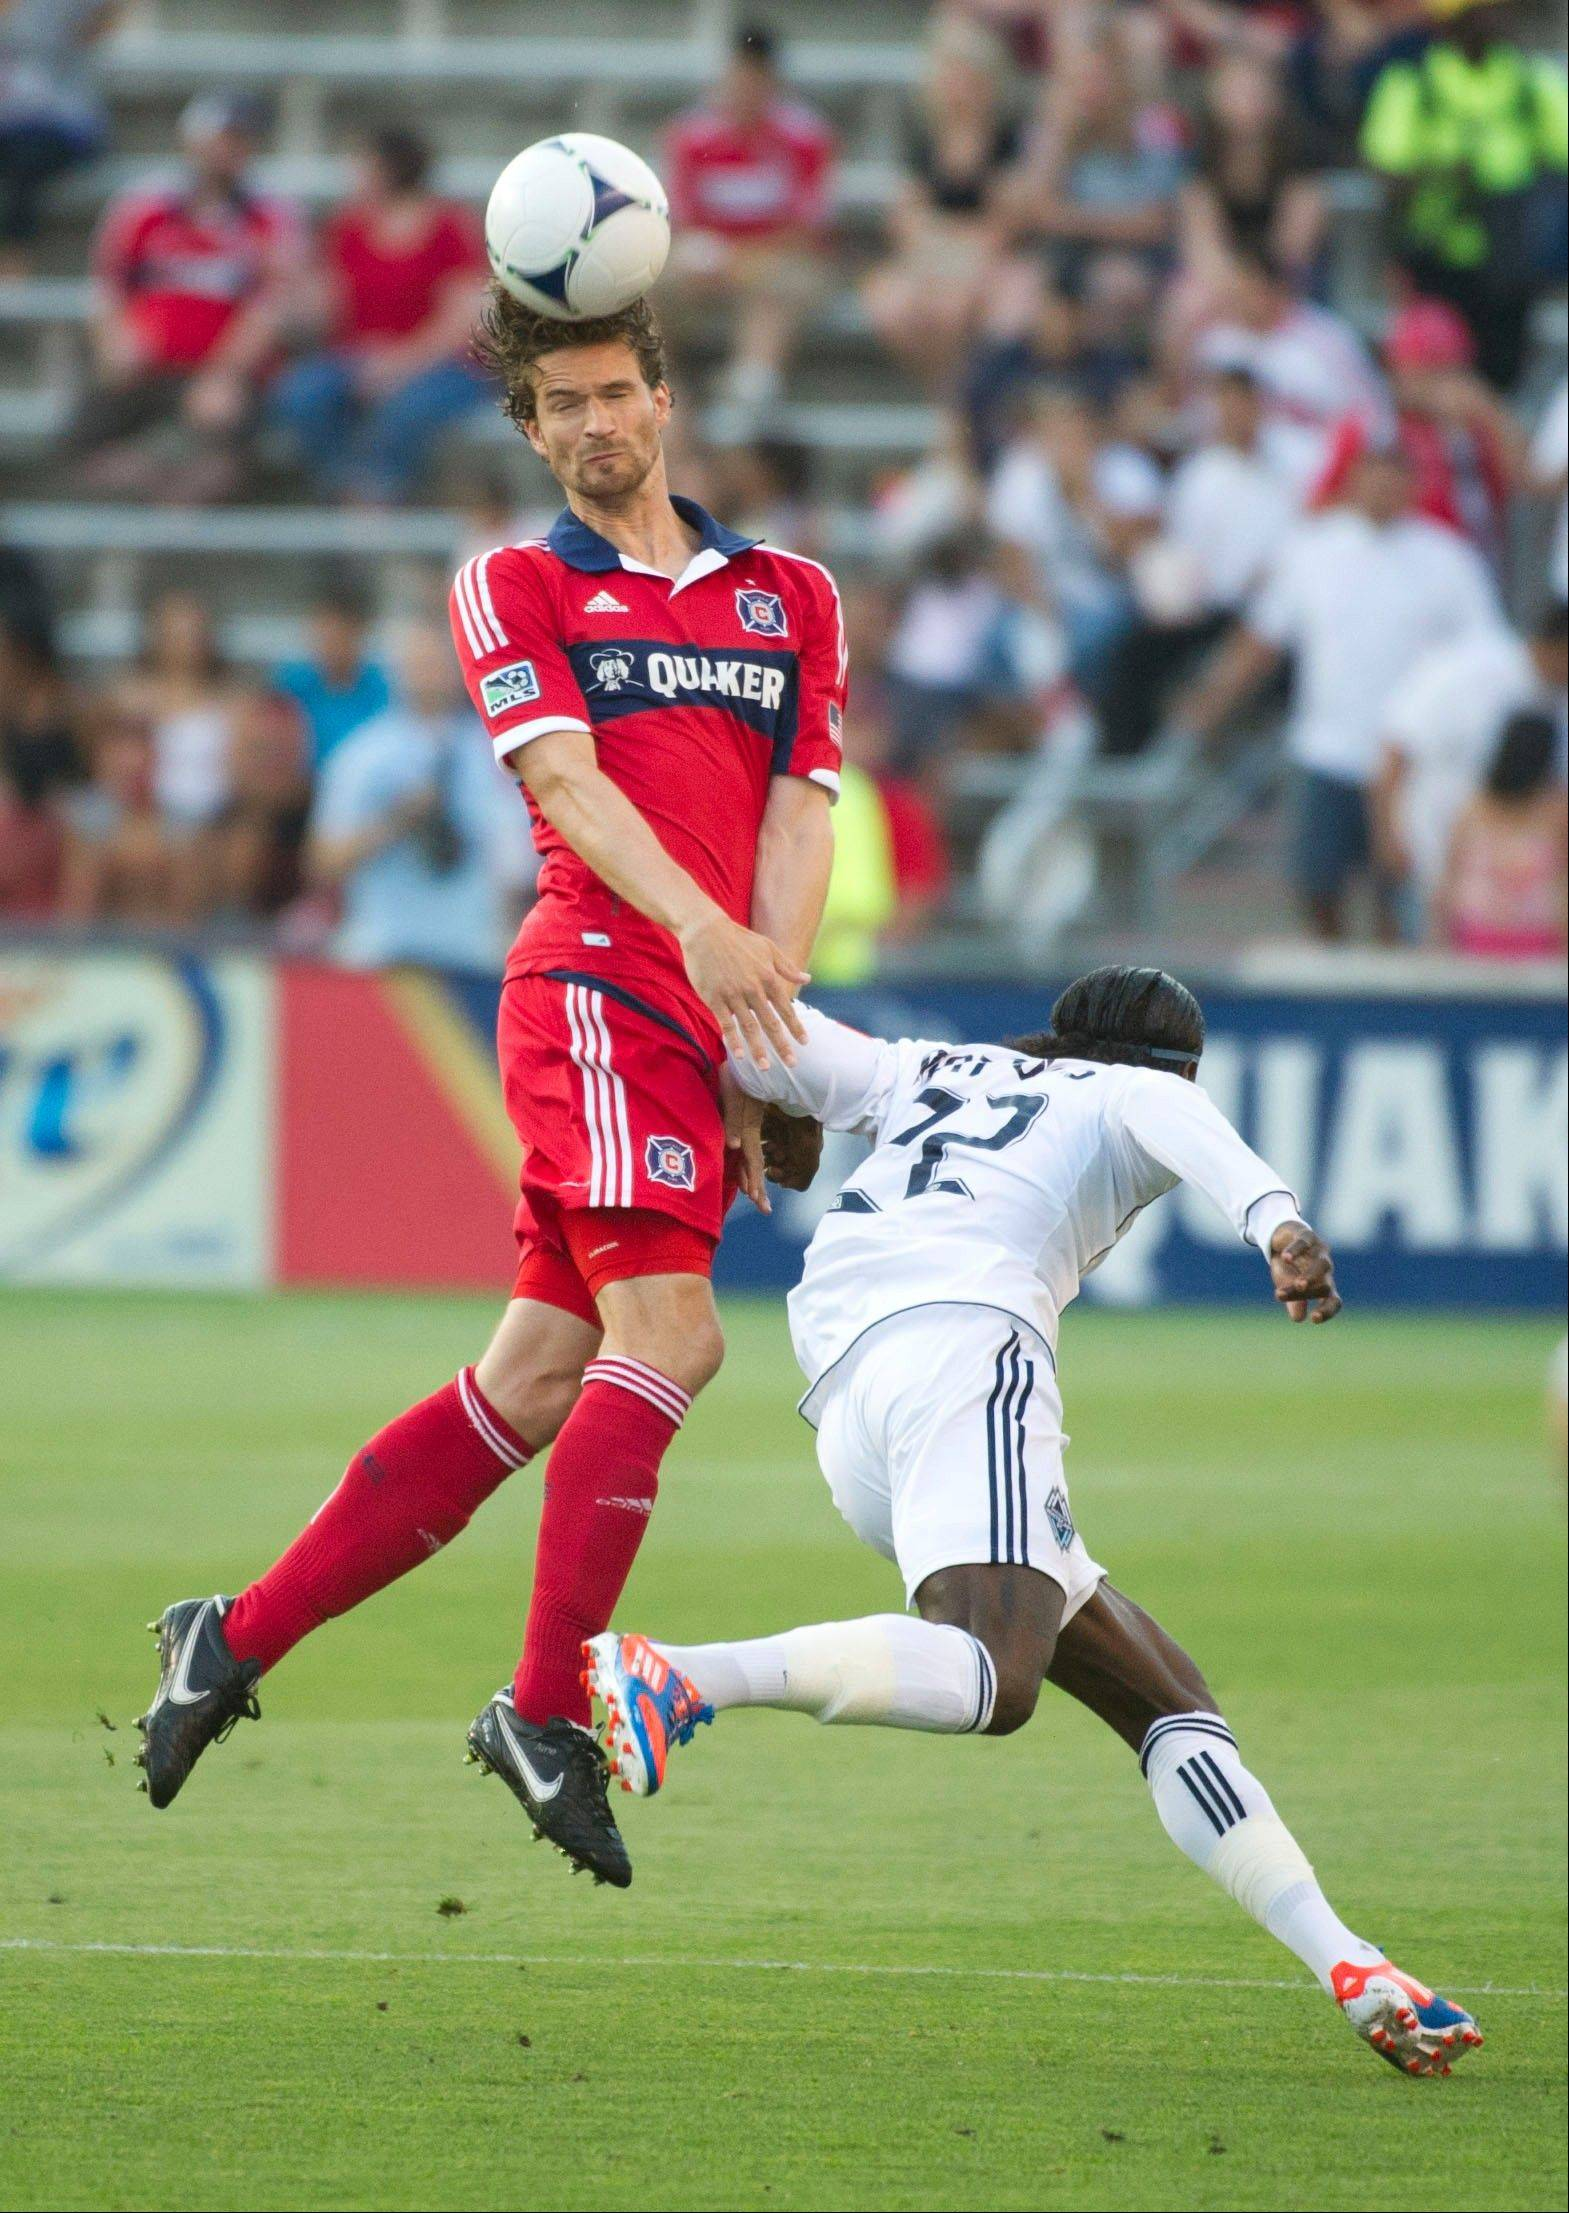 Chicago Fire defender Arne Friedrich, left, believes Saturday's final regular-season game is important to get its defensive side in line for the playoffs.